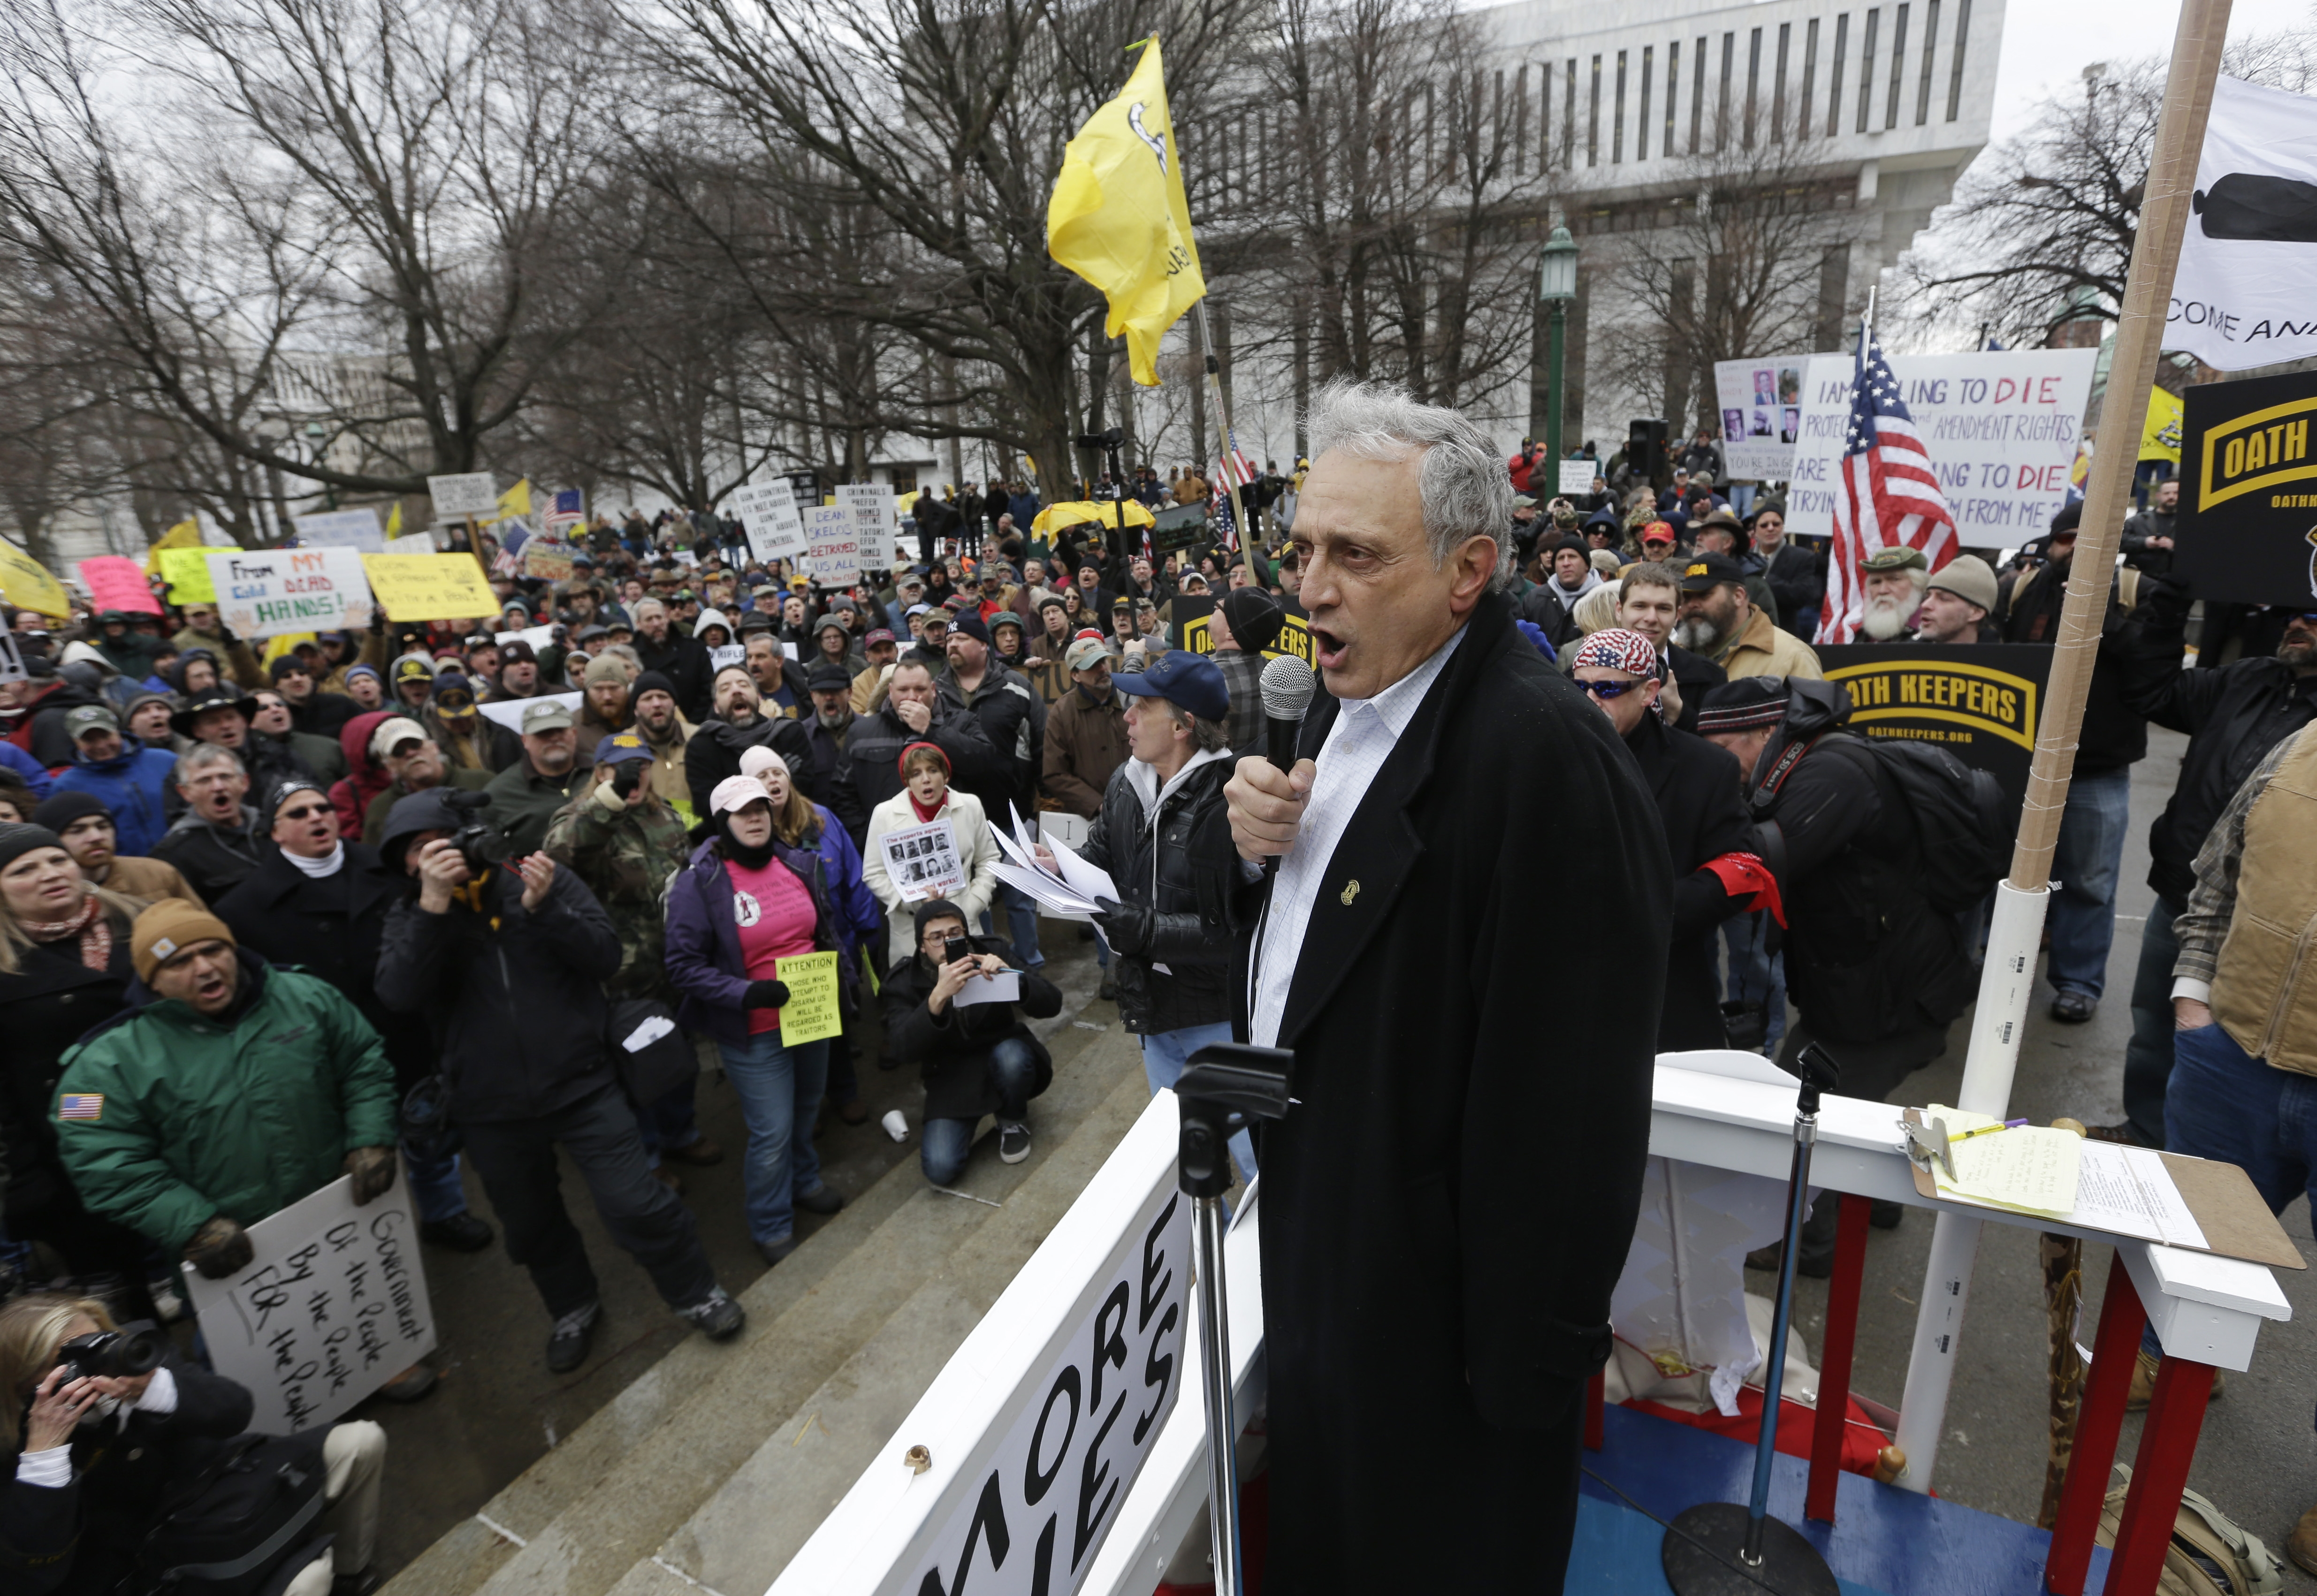 Carl Paladino, the 2010 Republican candidate for New York governor, speaks during a gun rights rally in Albany on Feb. 12.